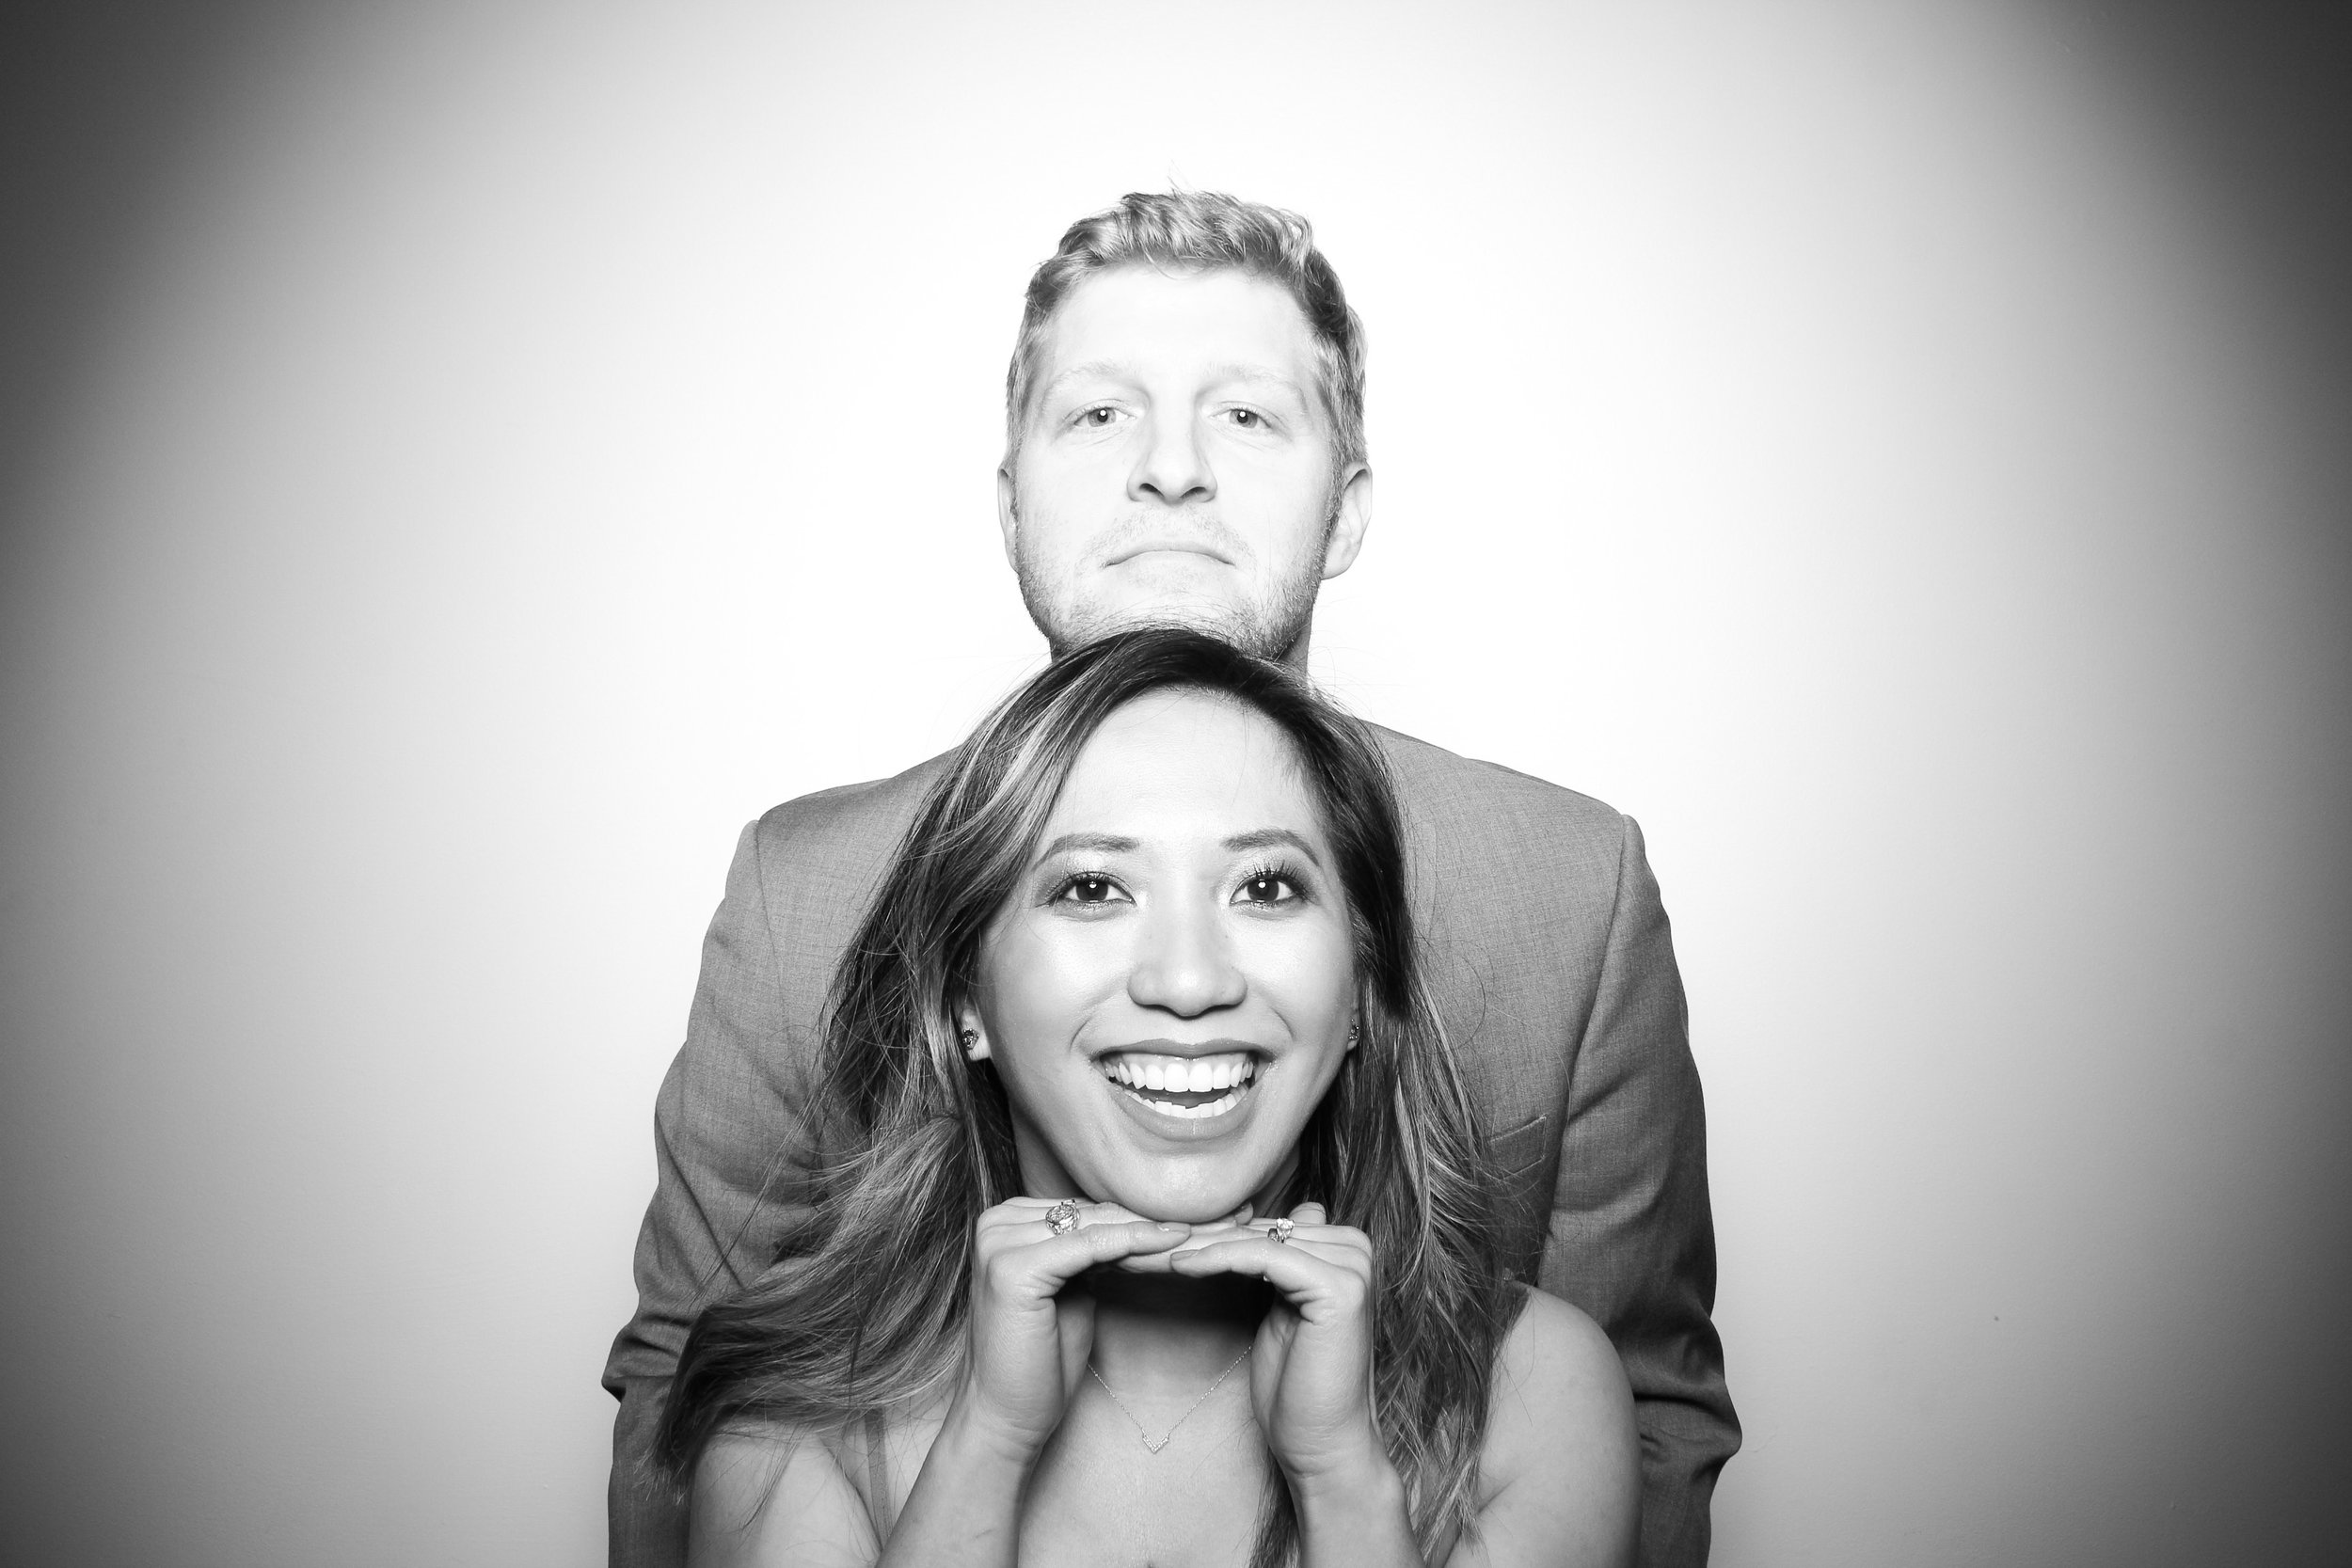 Chicago_Vintage_Wedding_Photobooth_Ravenswood_04.jpg